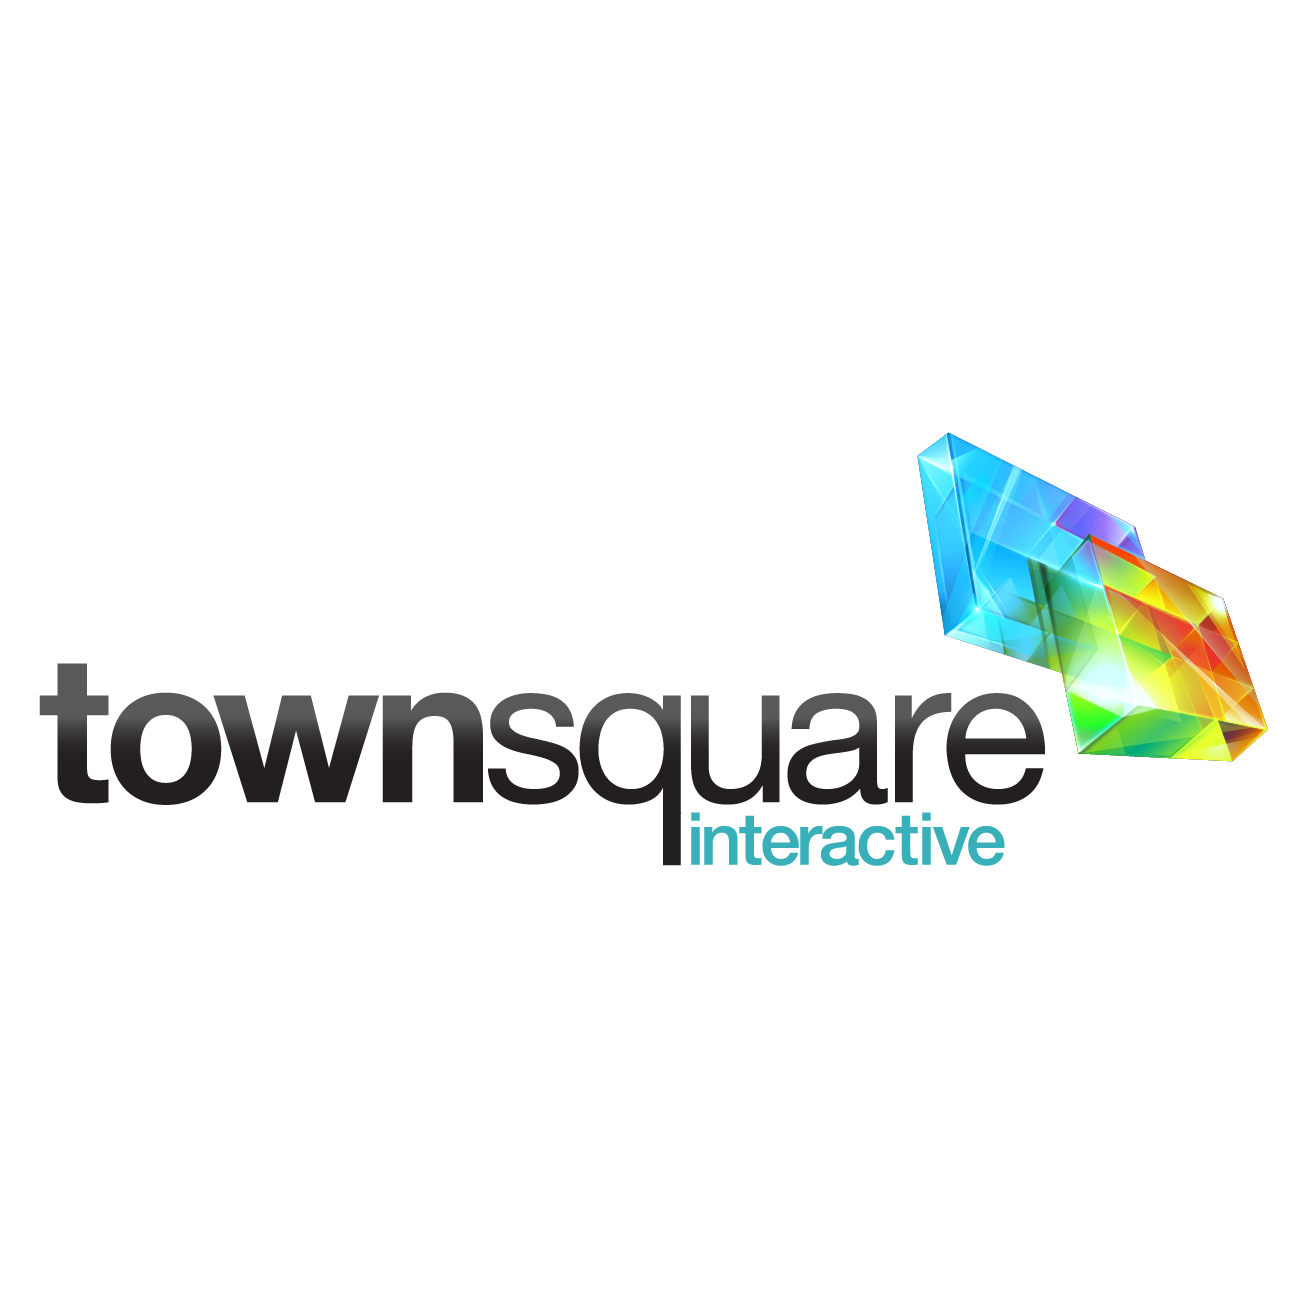 Townsquare Interactive